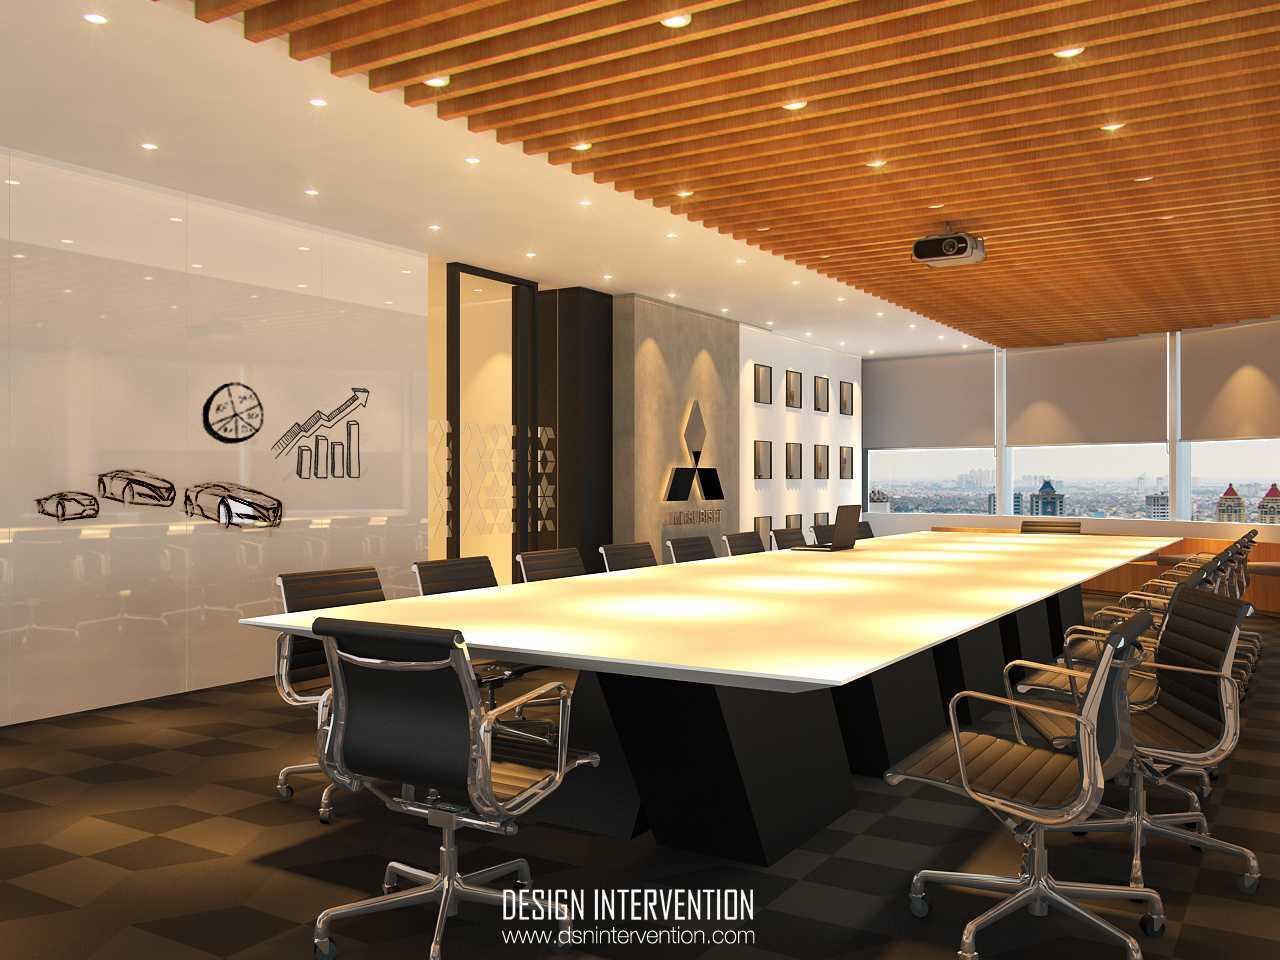 Design Intervention Mitsubishi Hq Office Tebet Tebet Meeting-Room-View   14981